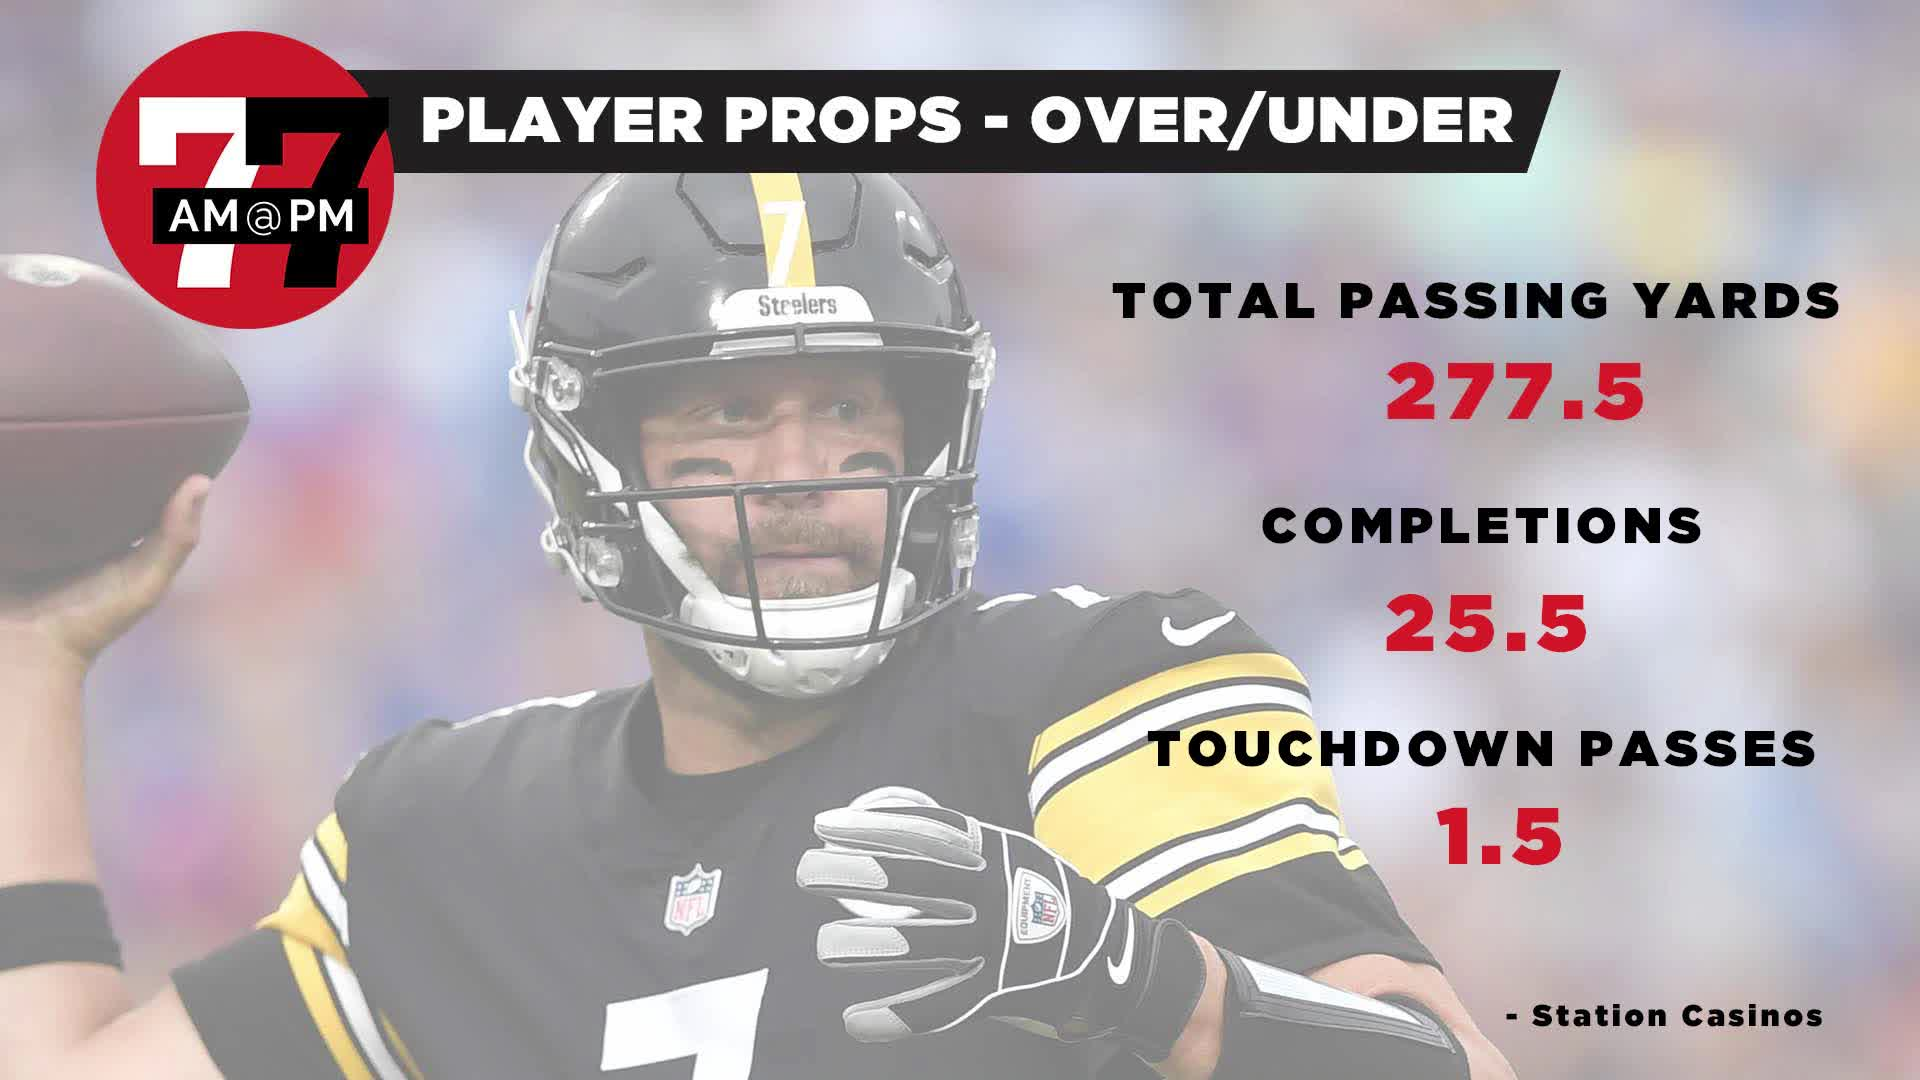 7@7PM Player Props for Raiders-Steelers